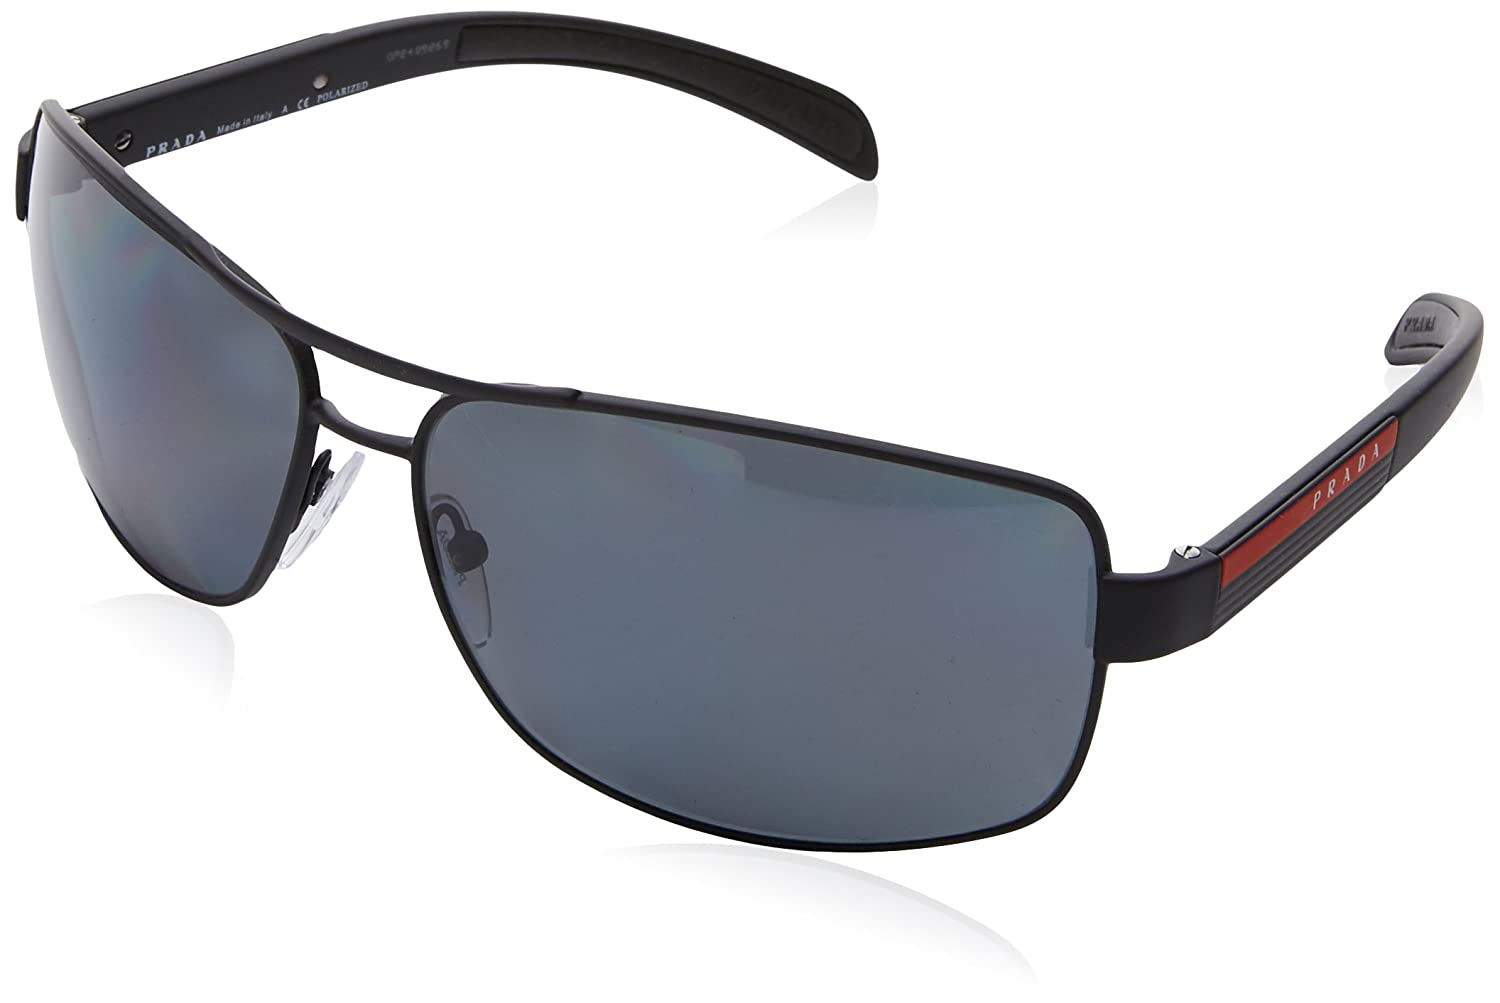 ddcf26dd605 Prada Linea Rossa Men s PS 54IS Sunglasses 65mm at Amazon Men s Clothing  store